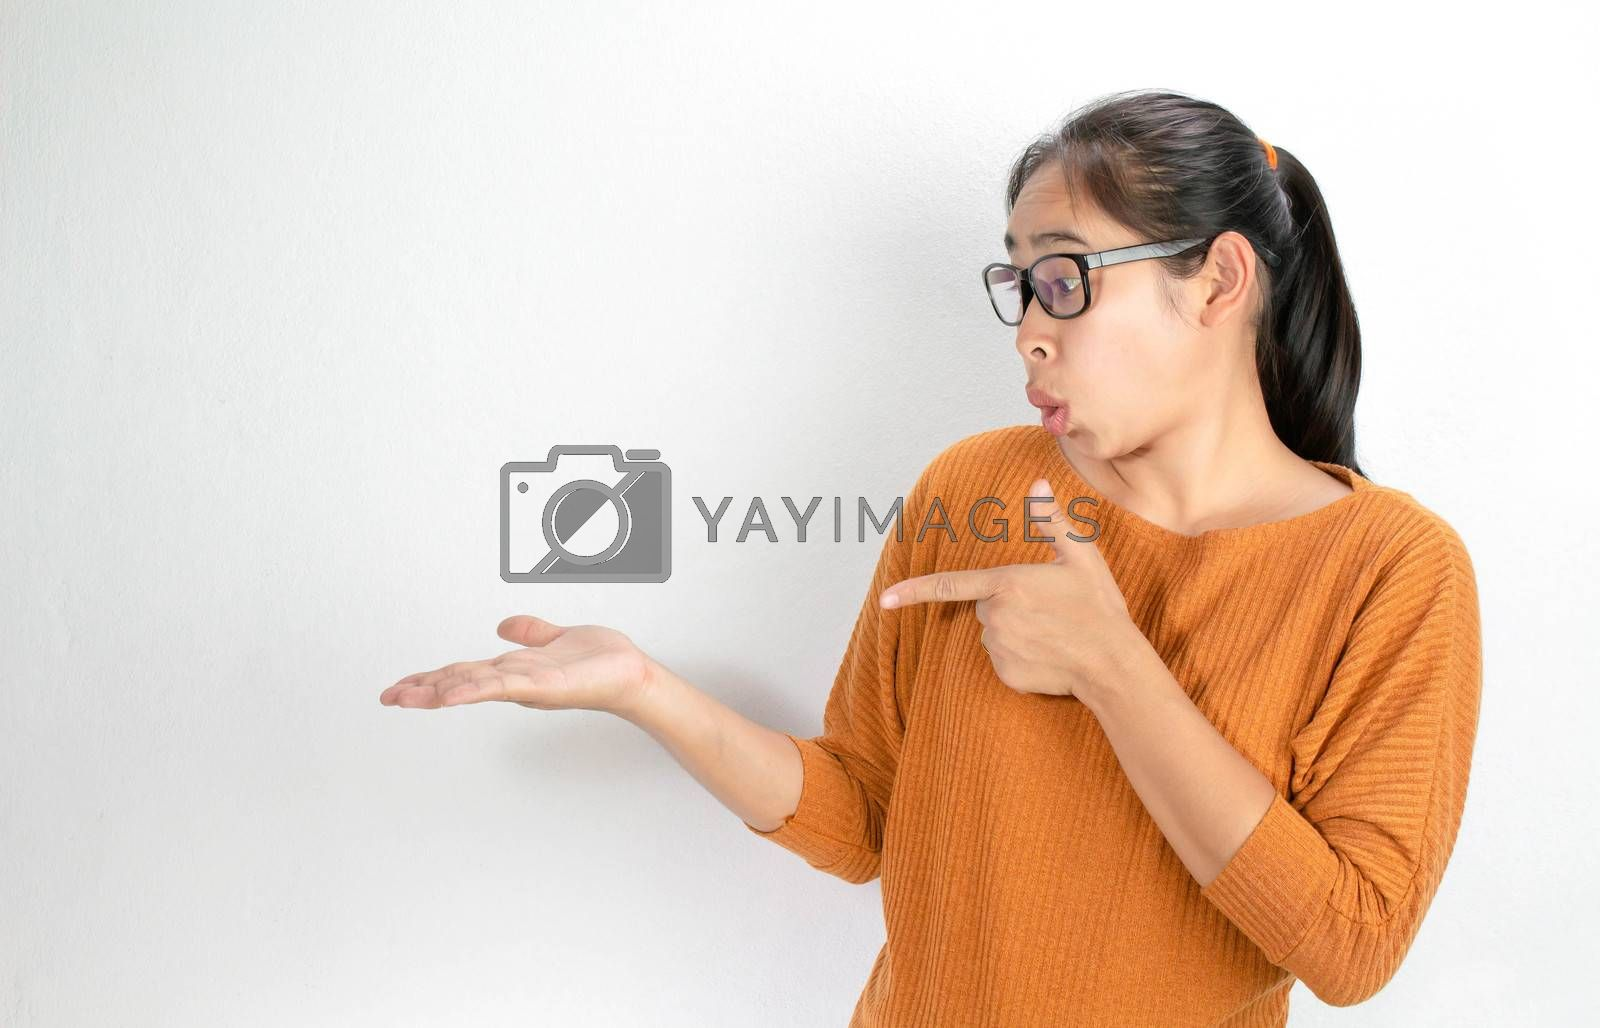 Asian woman wearing orange shirt and eyeglasses holding copy space on the palm and pointing on it while have shocked face. Isolated on white background by TEERASAK